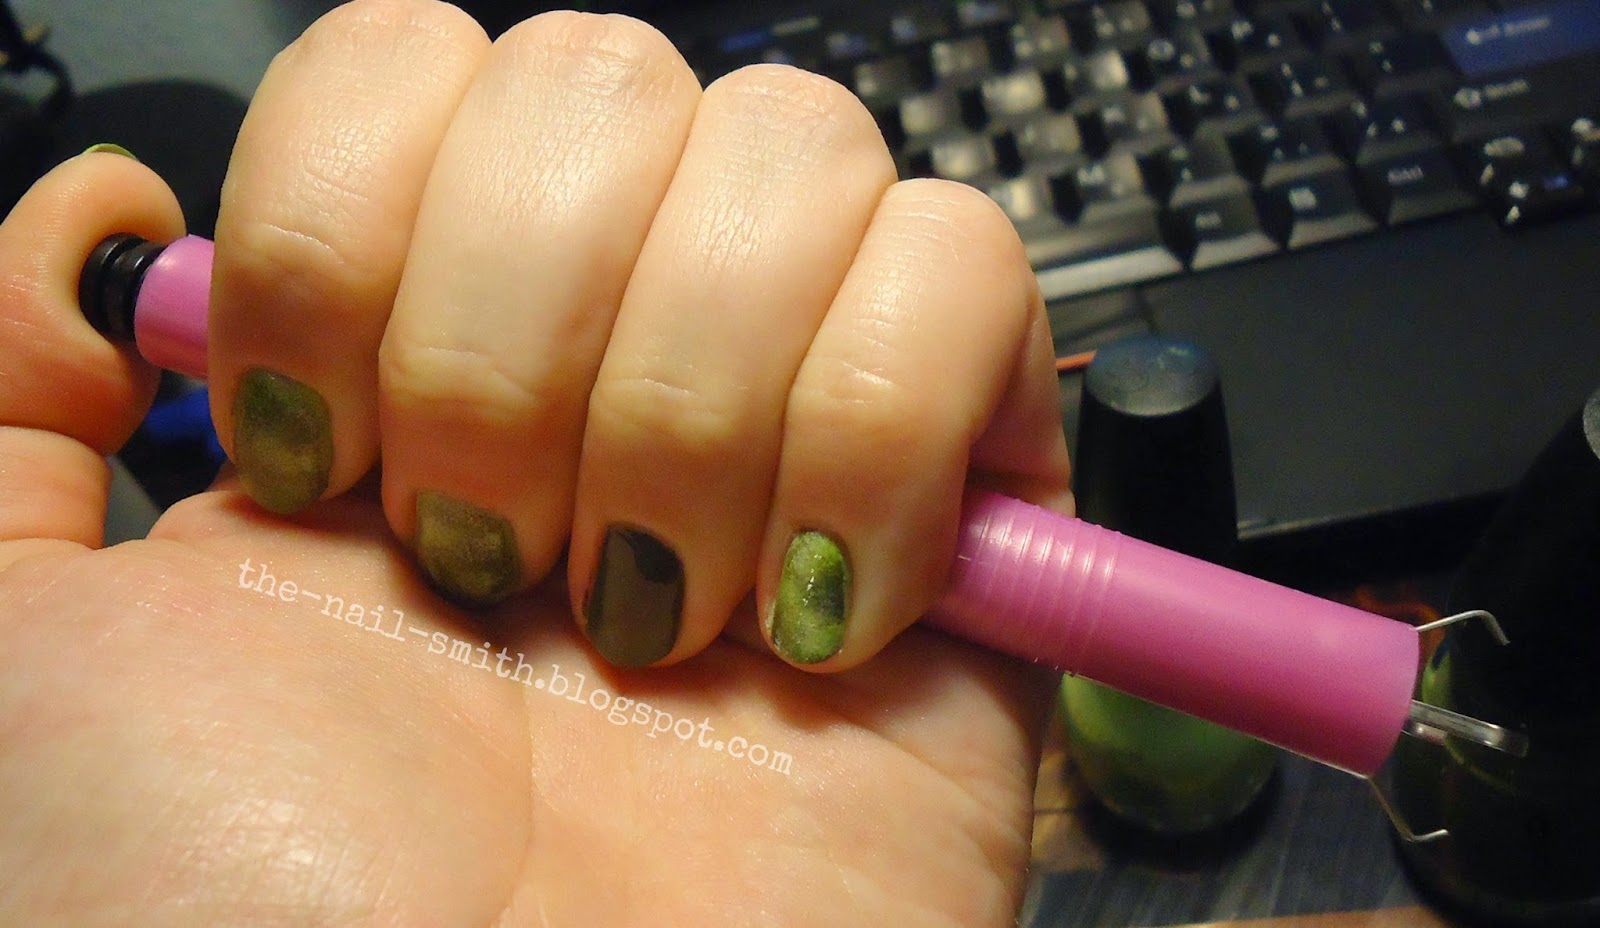 The Nail Smith: Mushi-Shi nails and A COOL NEW METHOD (to me)